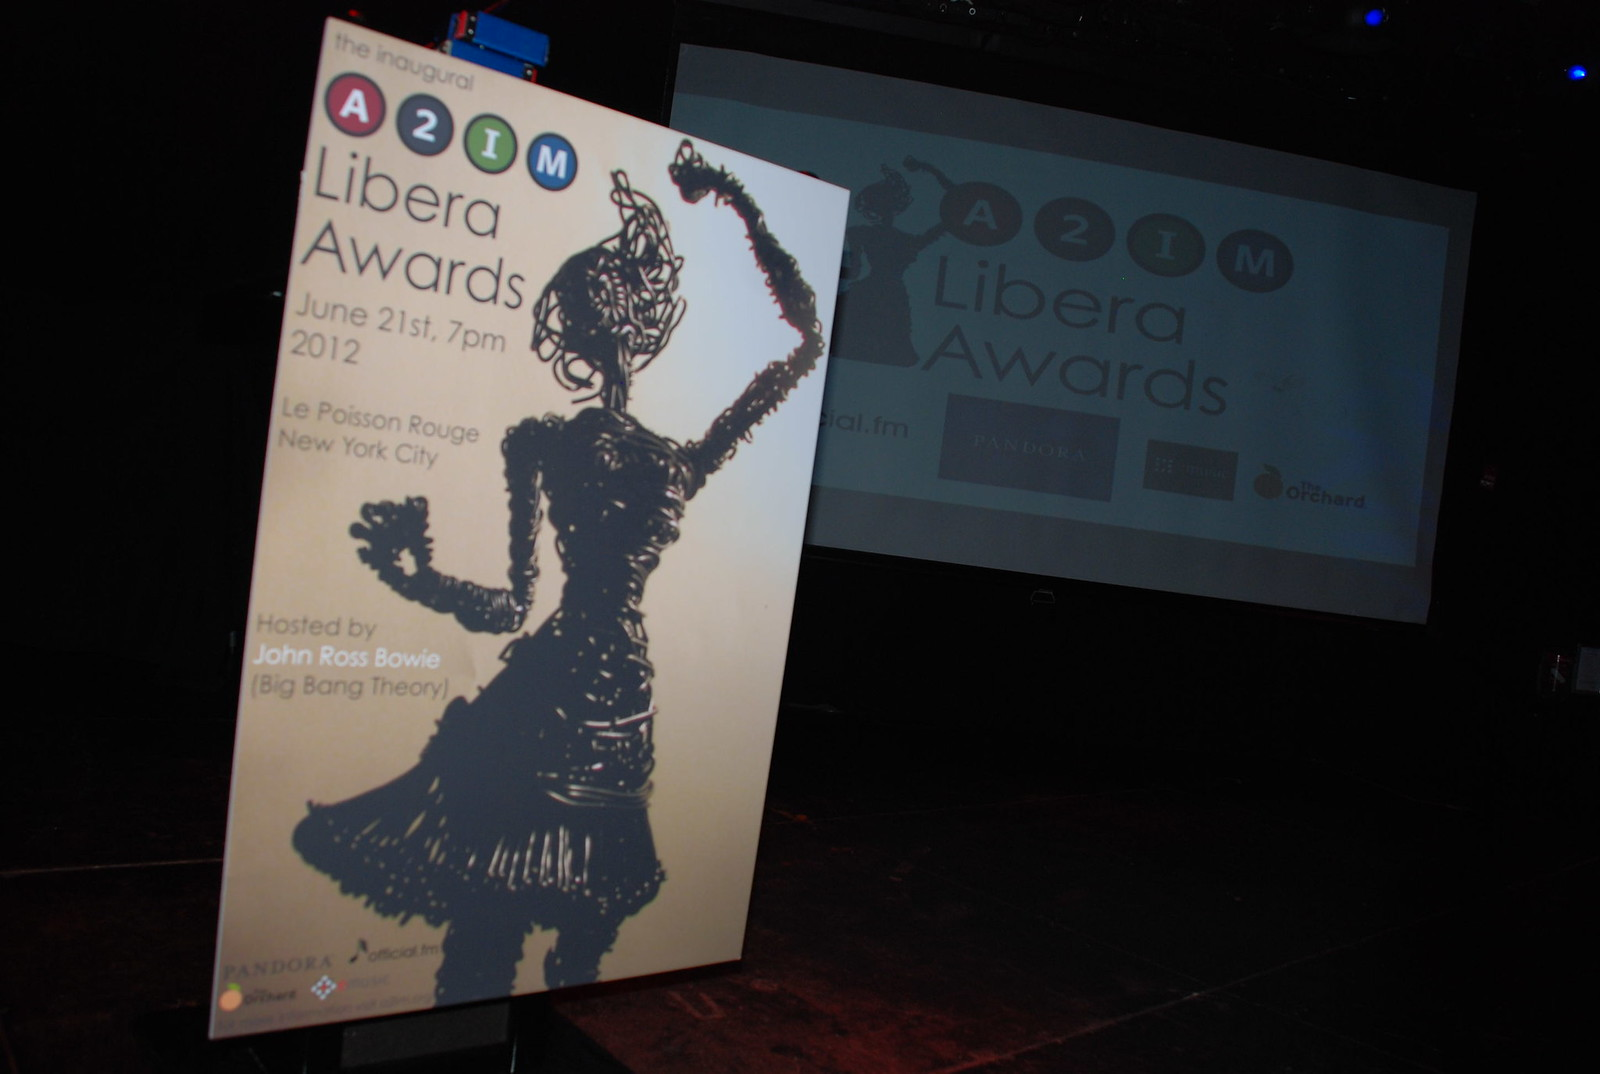 The First Annual A2IM Libera Awards (The Libbies)